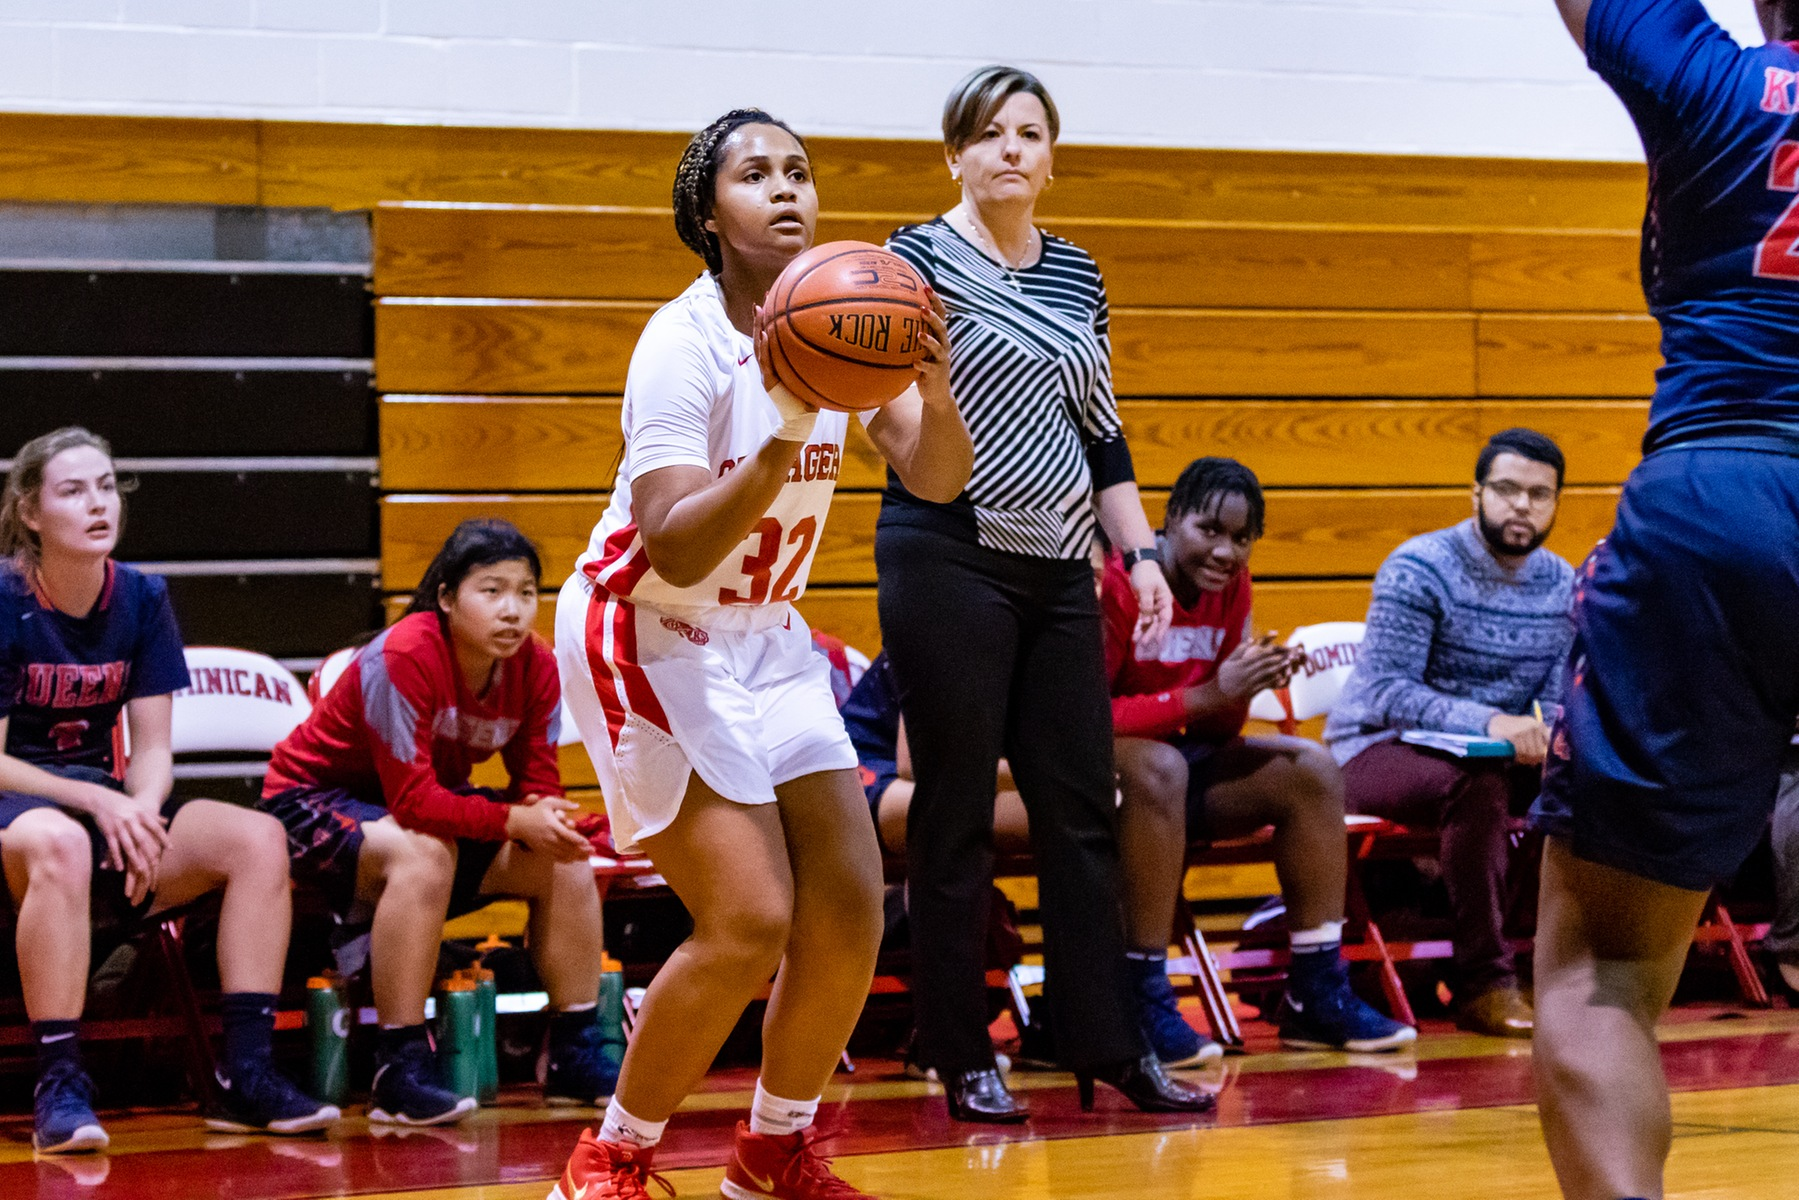 LADY CHARGERS EARN SECOND STRAIGHT WIN OVER RIVAL NYACK